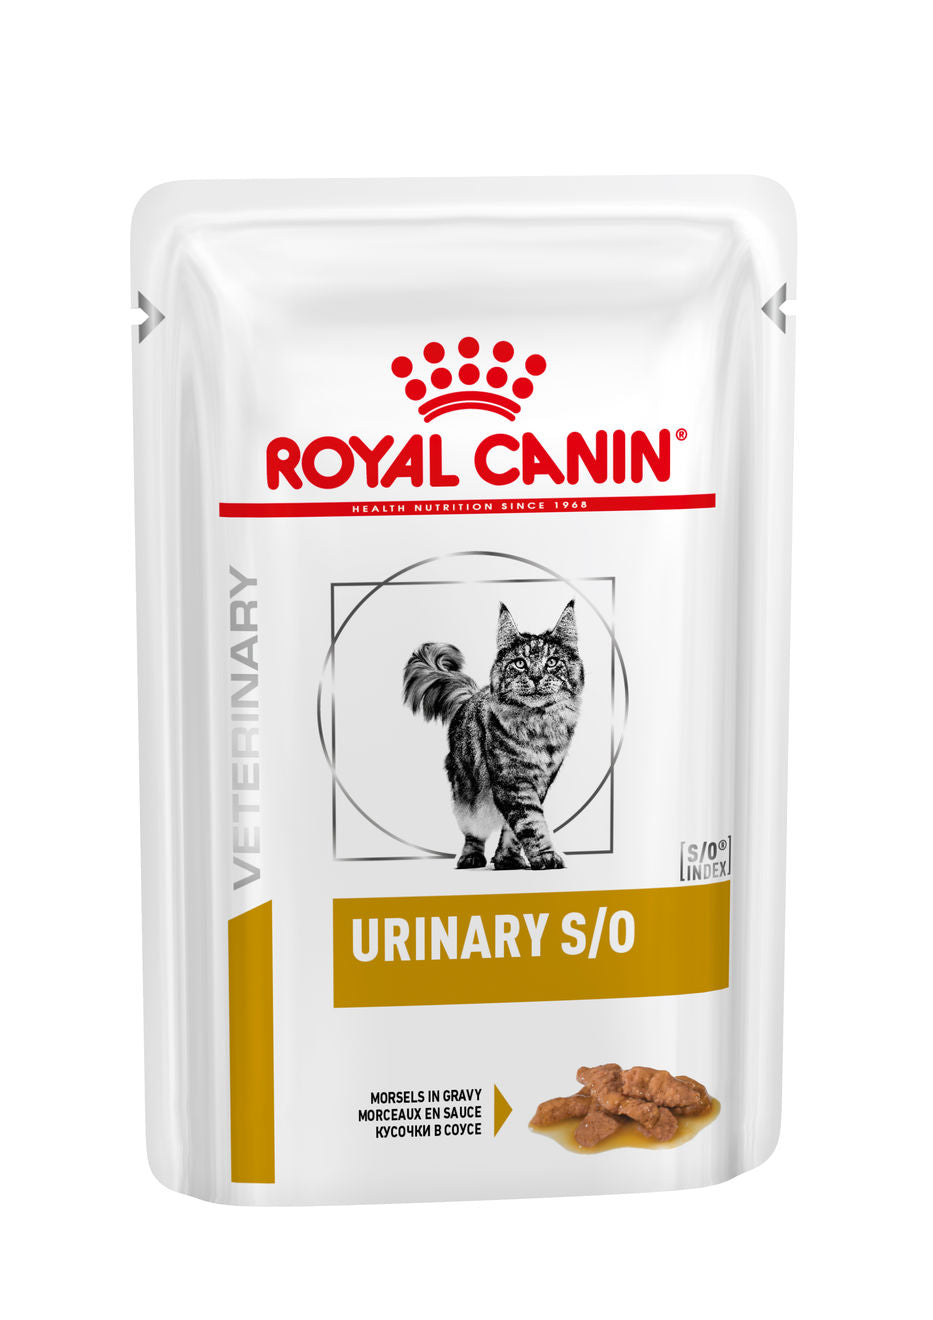 Royal Canin Urinary S/O with Chicken Pouch(Morsels) for Cats